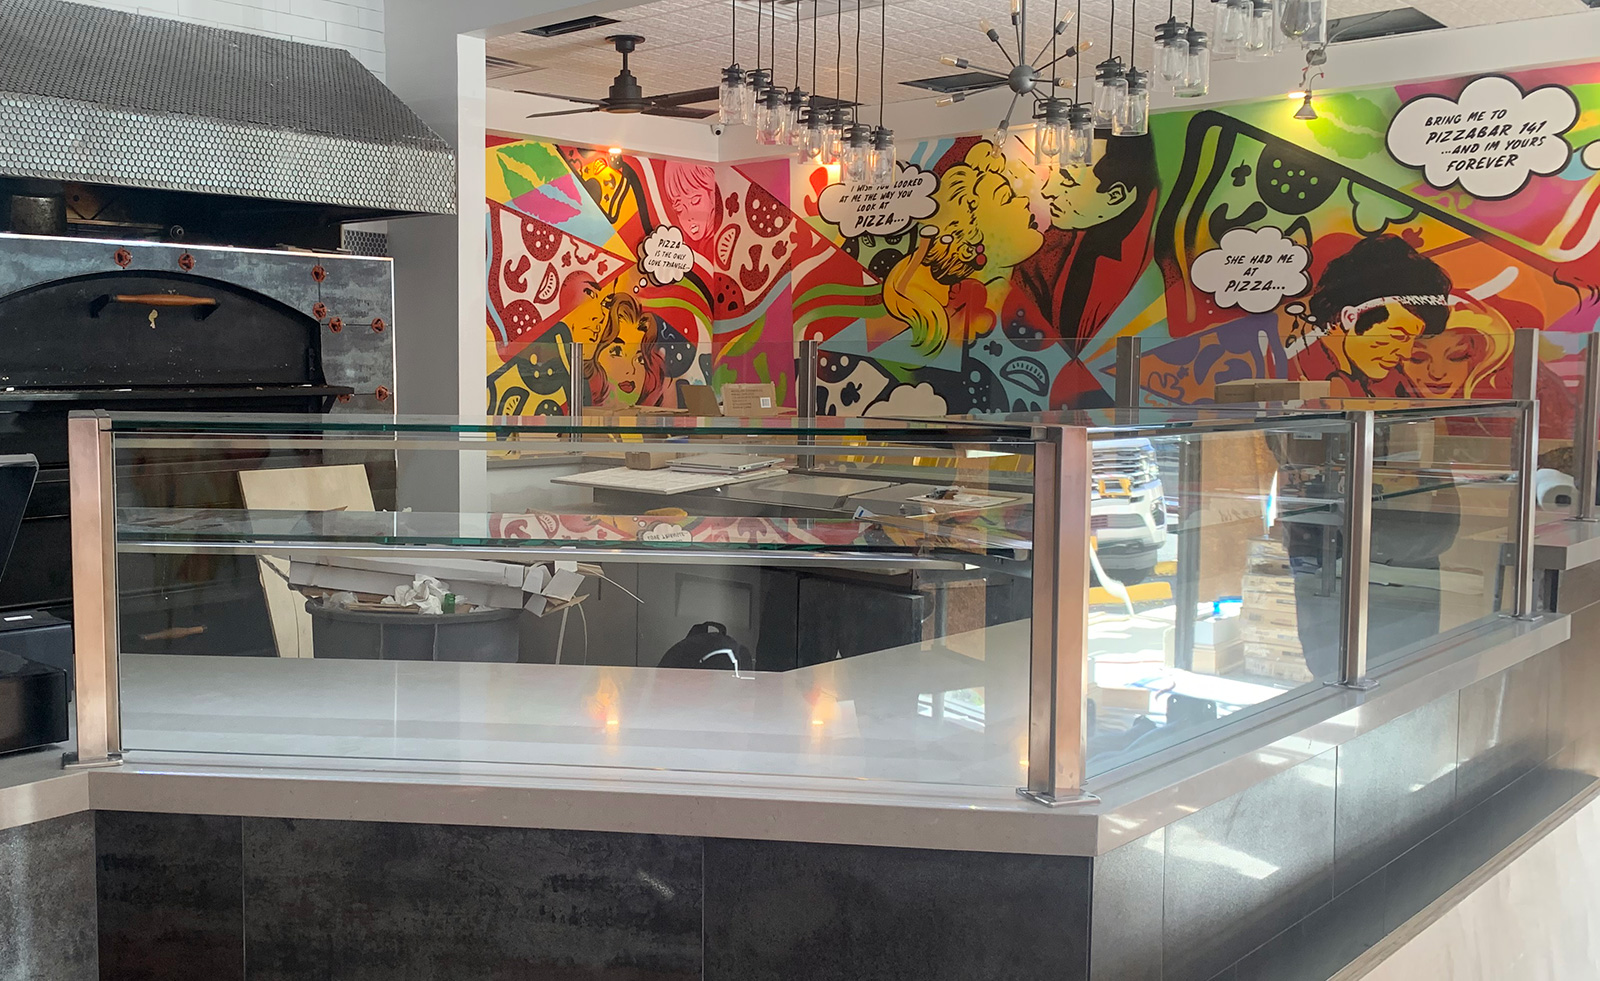 Satin Stainless Steel Food Shield | Pizzabar 141 - Woodbury, NY